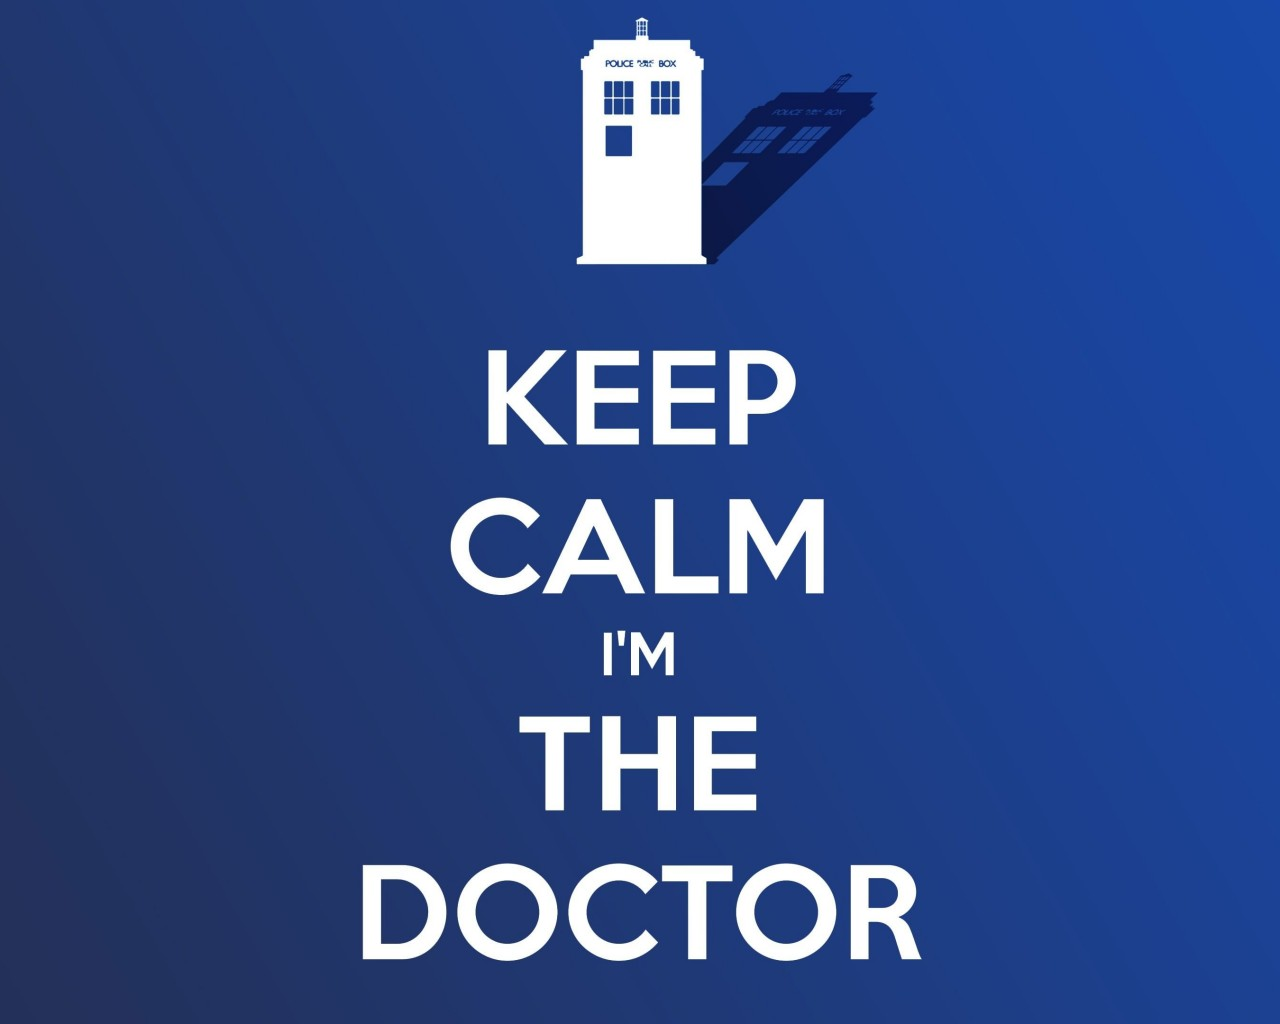 Keep Calm Im The Doctor Wallpaper for Desktop 1280x1024